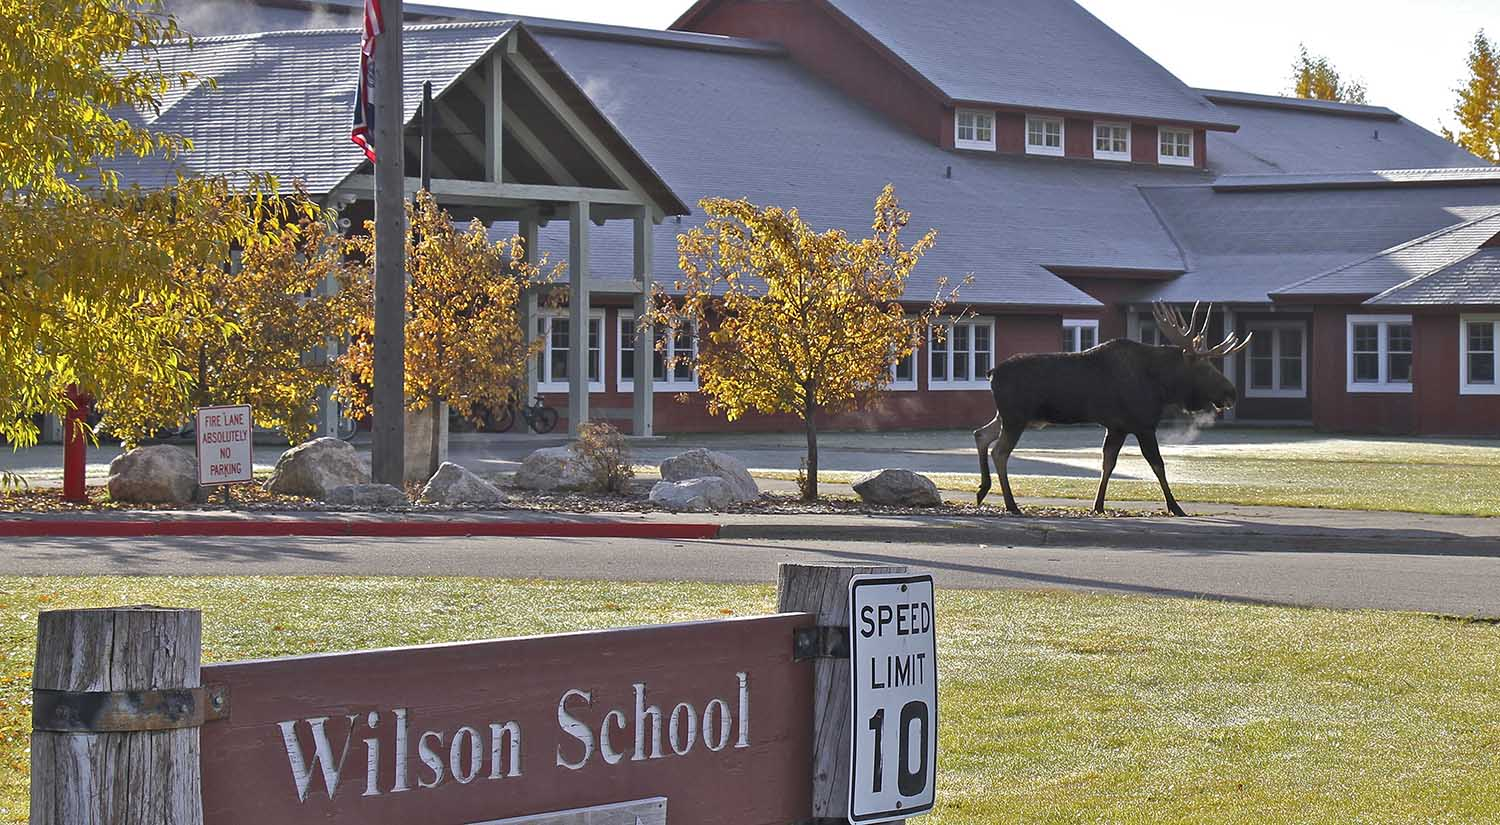 Bull Moose at the Wilson School - Jackson Hole